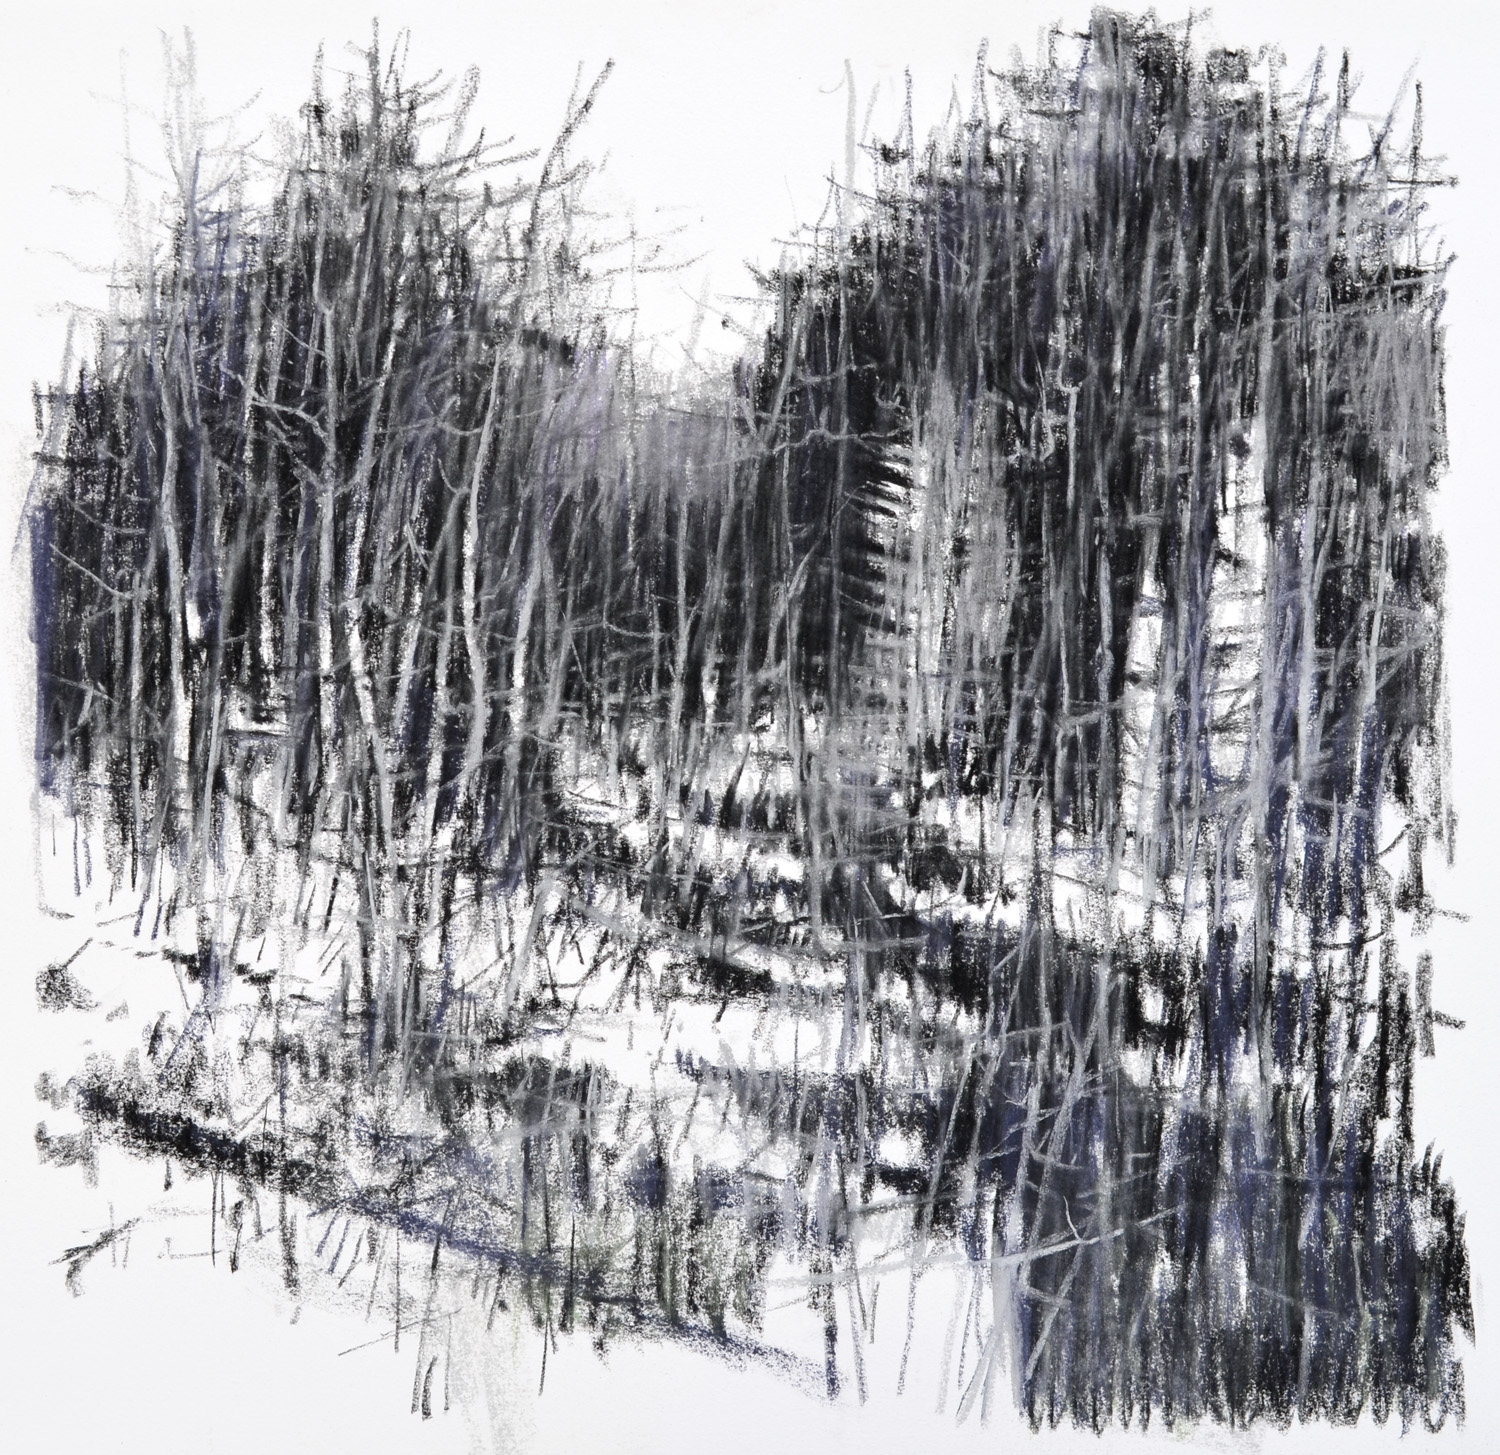 "Winter Creek Bed,   William Chickillo, 20"" x 20"" charcoal drawing"